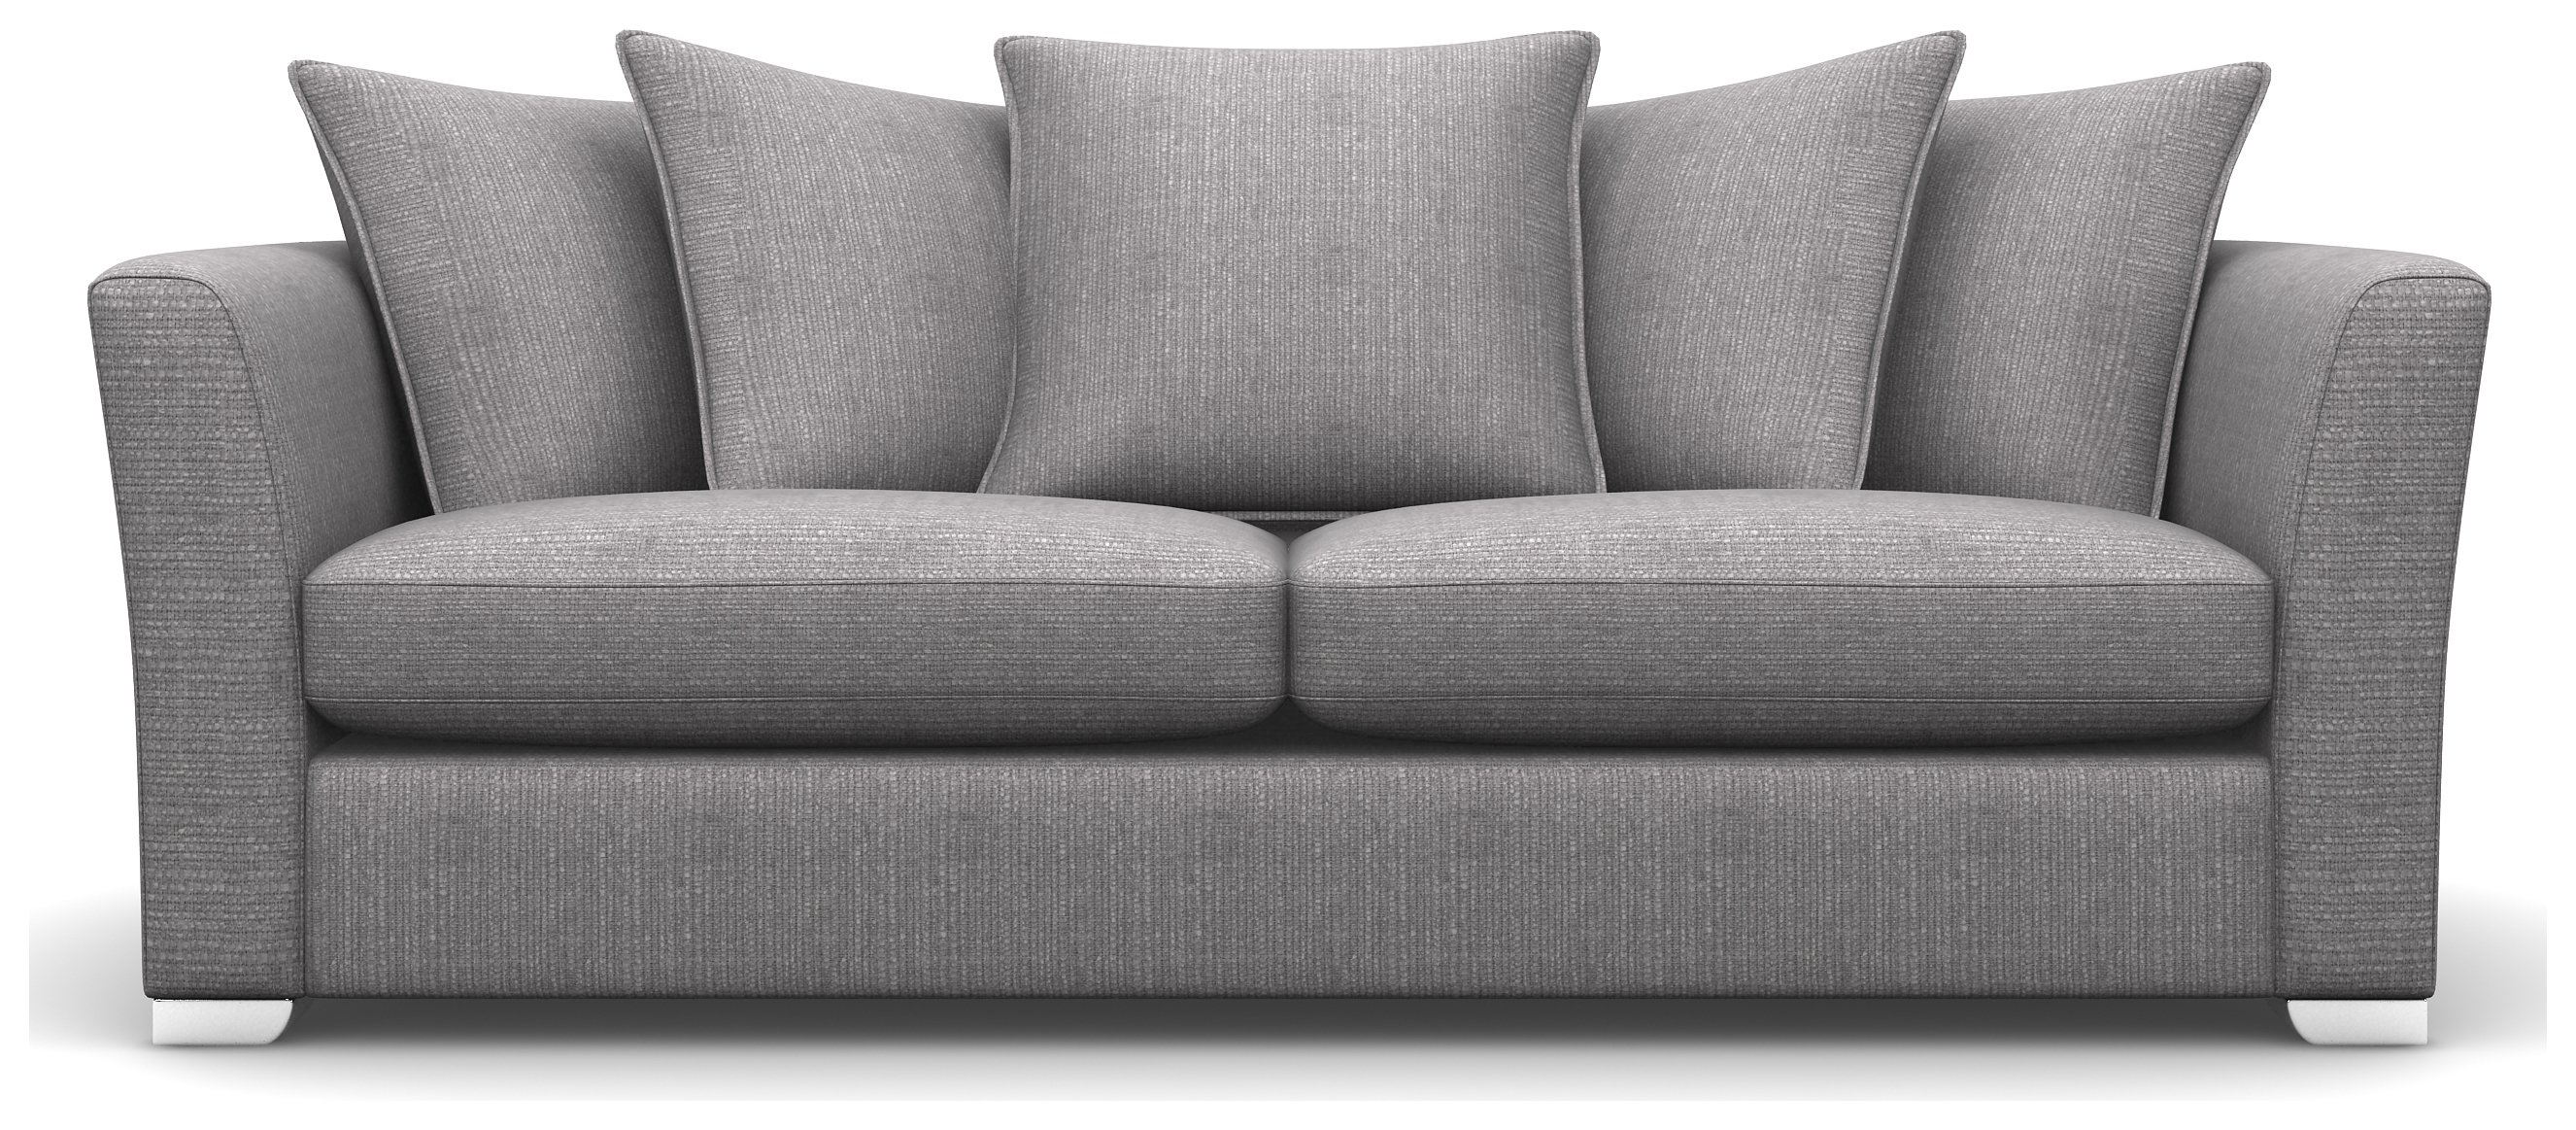 Heart of House Libby 3 Seater Fabric Sofa - Ash + White Legs